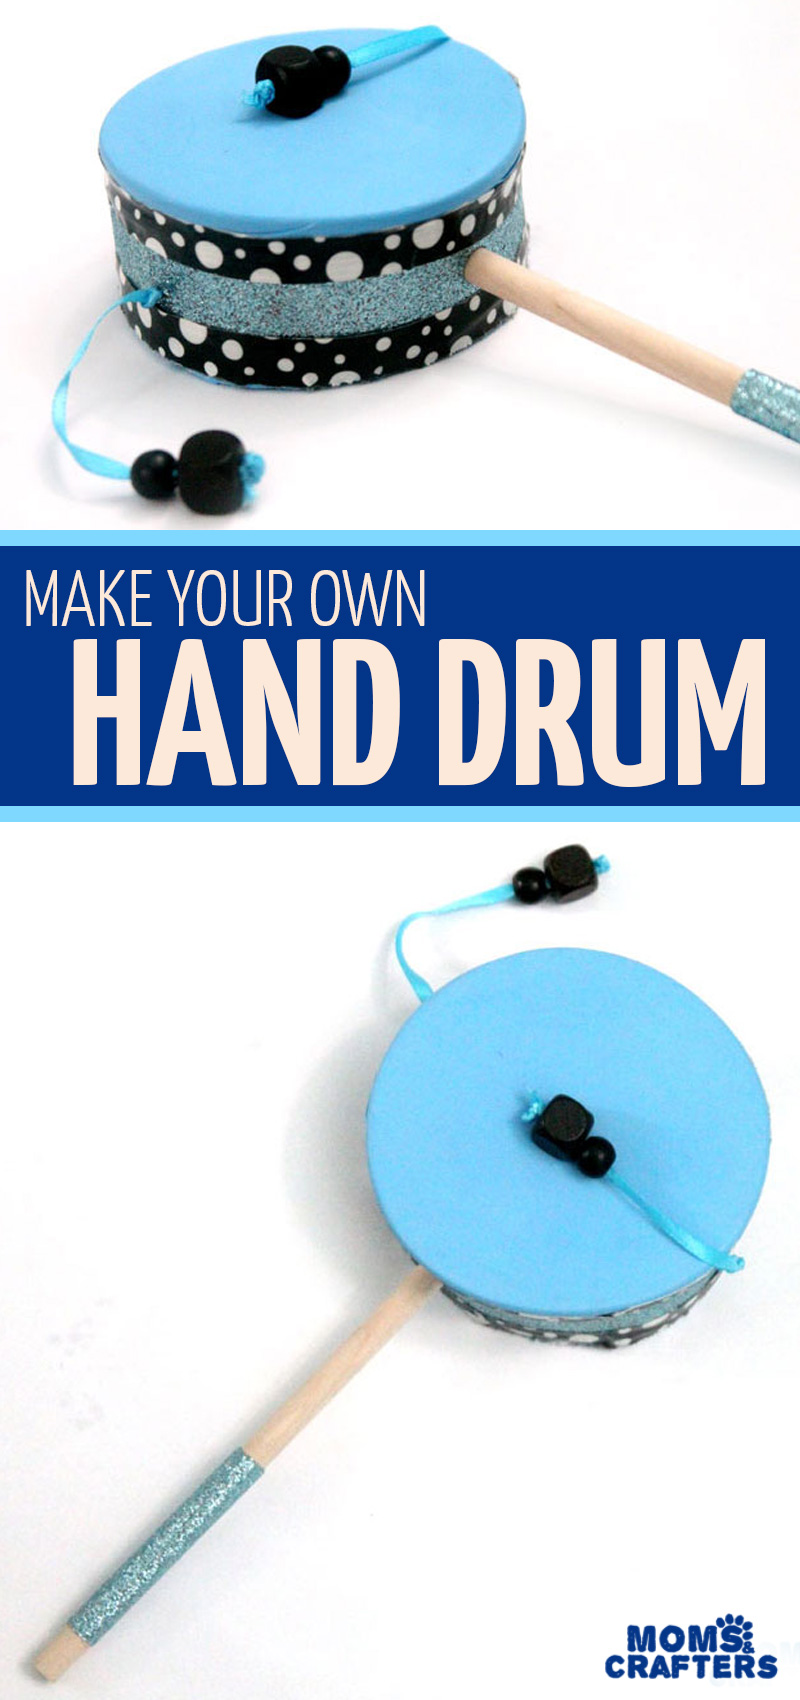 Make this super cool DIY toy hand drum with balloons, recycled Pringles containers and other basic craft supplies you probably have handy! #diytoy #noisemaker #newyearseve #kidscrafts #diymusicalinstrument #diymusic #musicalinstrument